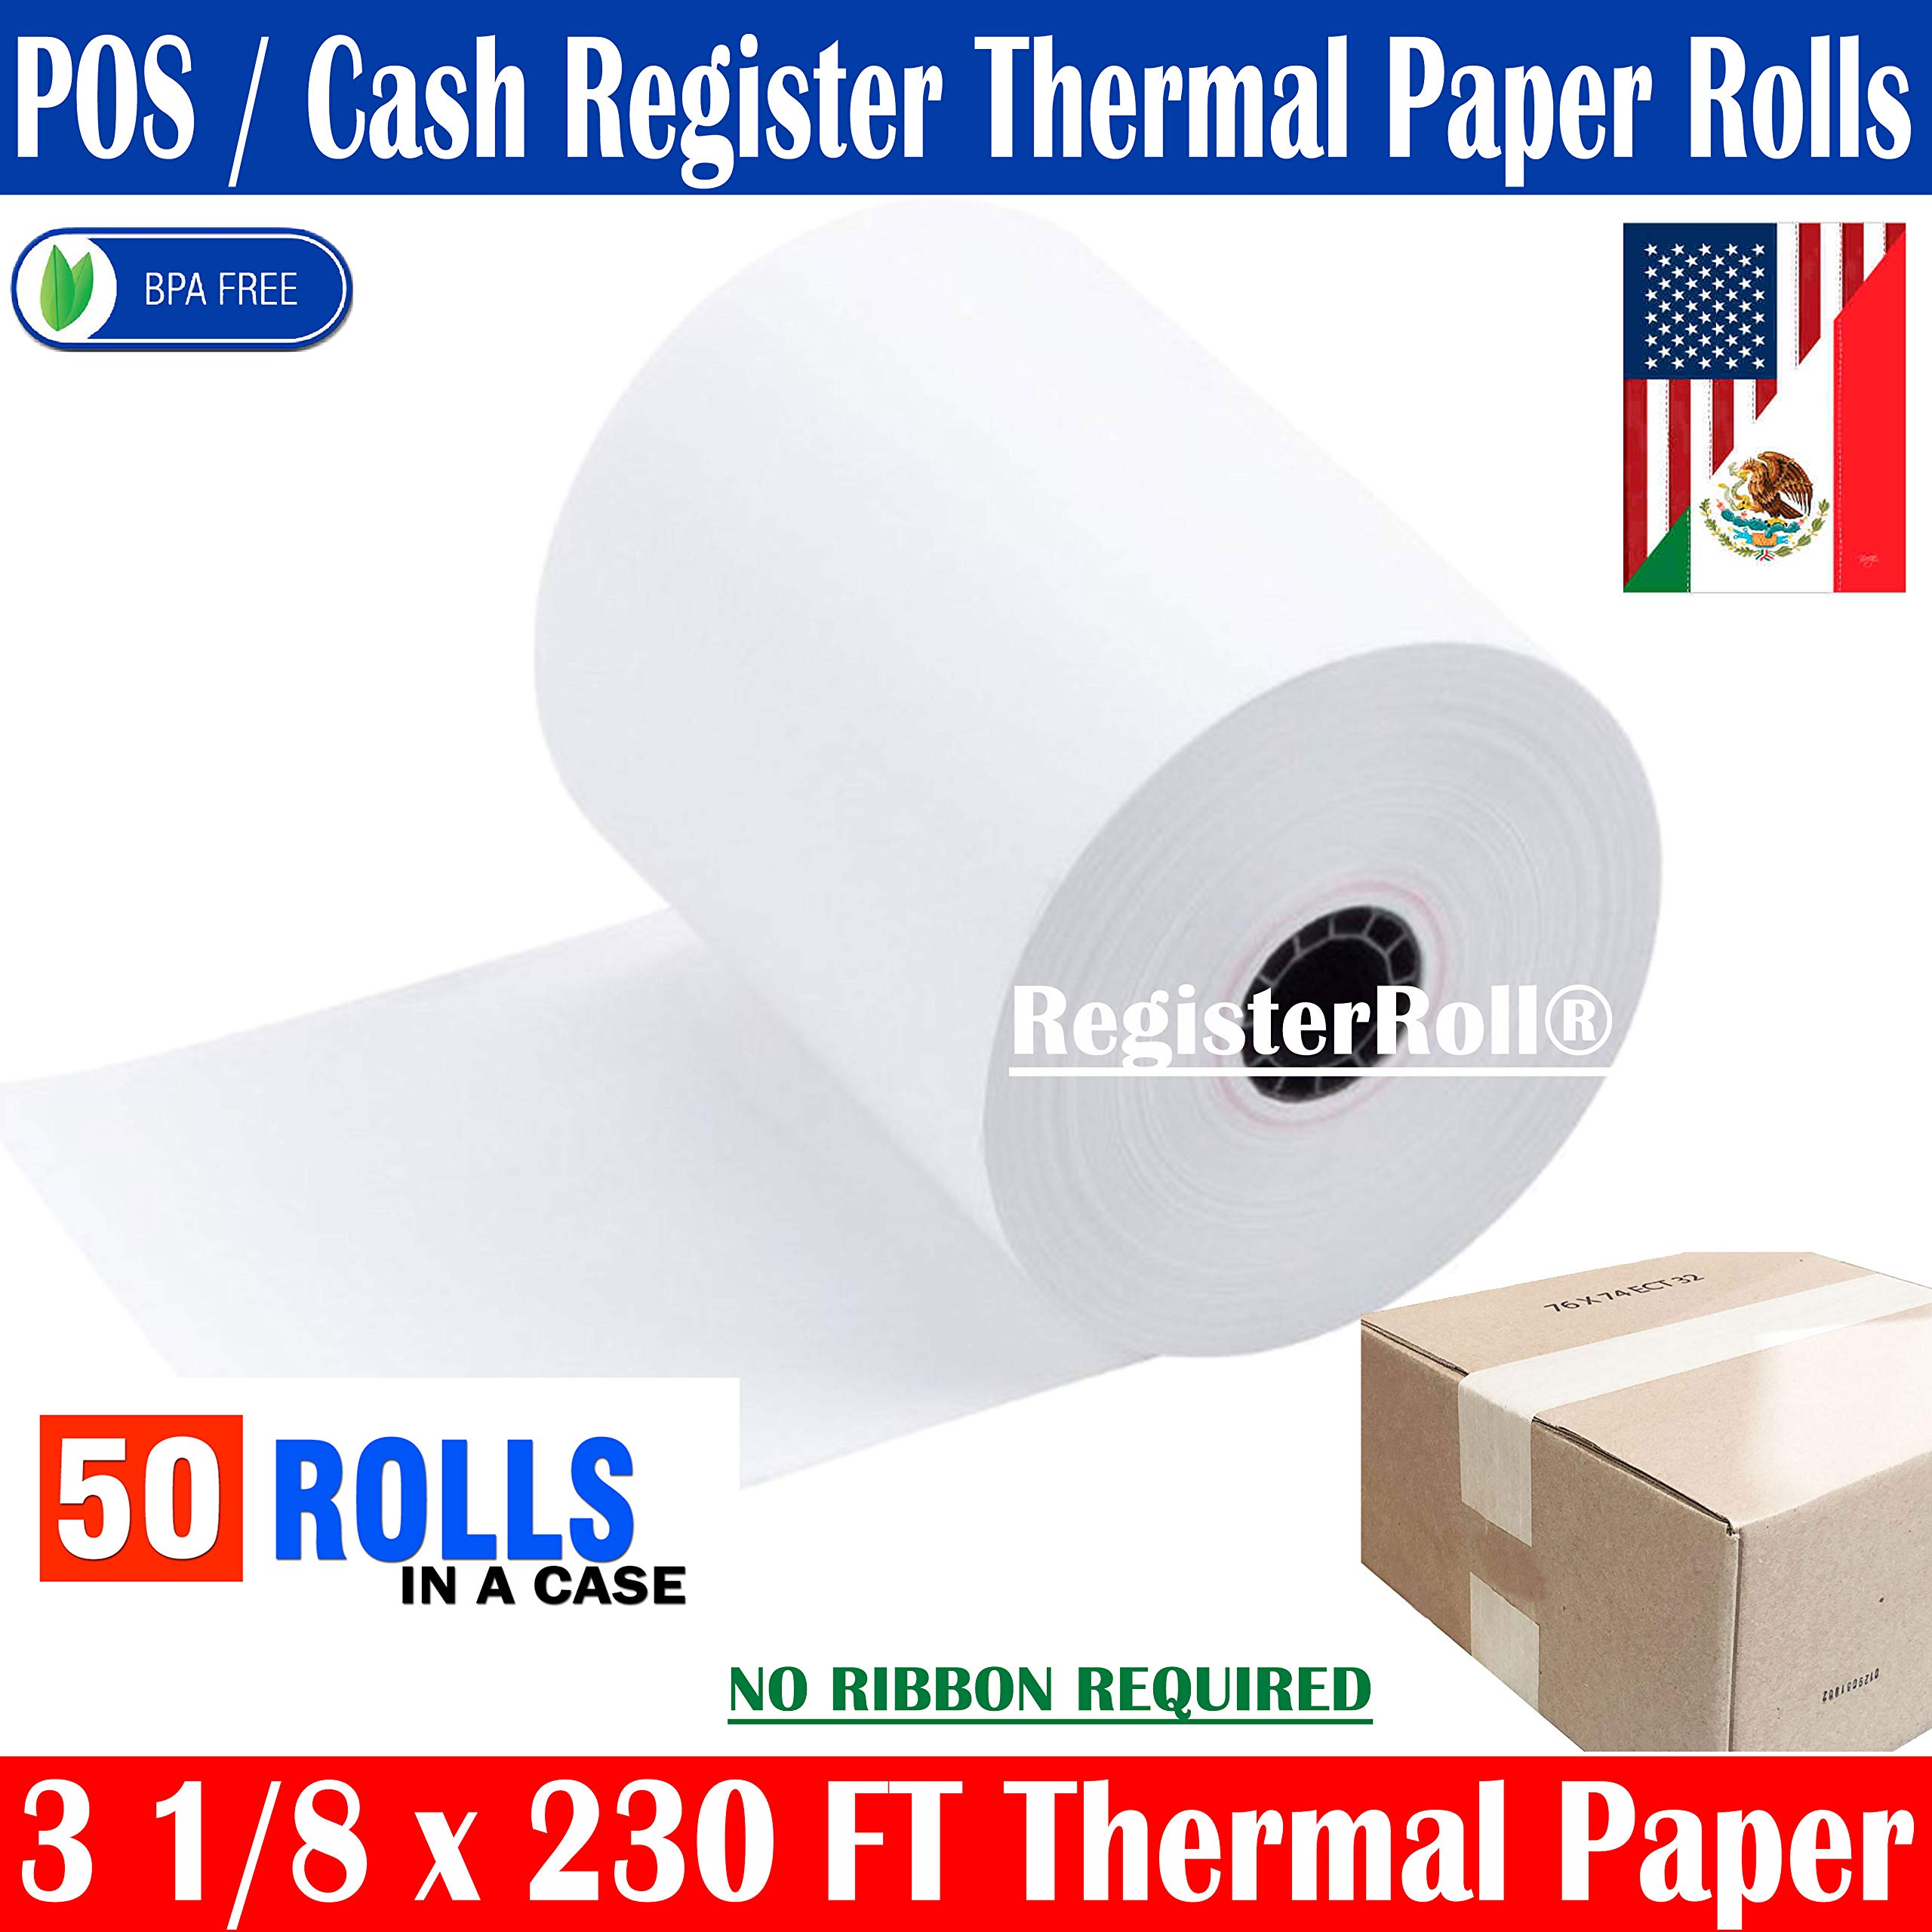 Thermal Receipt Paper, 3-1/8'' x 230', White, 50 Rolls/Pk | NCR 856348 BPA Free - Made in USA | from RegisterRoll by ✅ REGISTERROLL